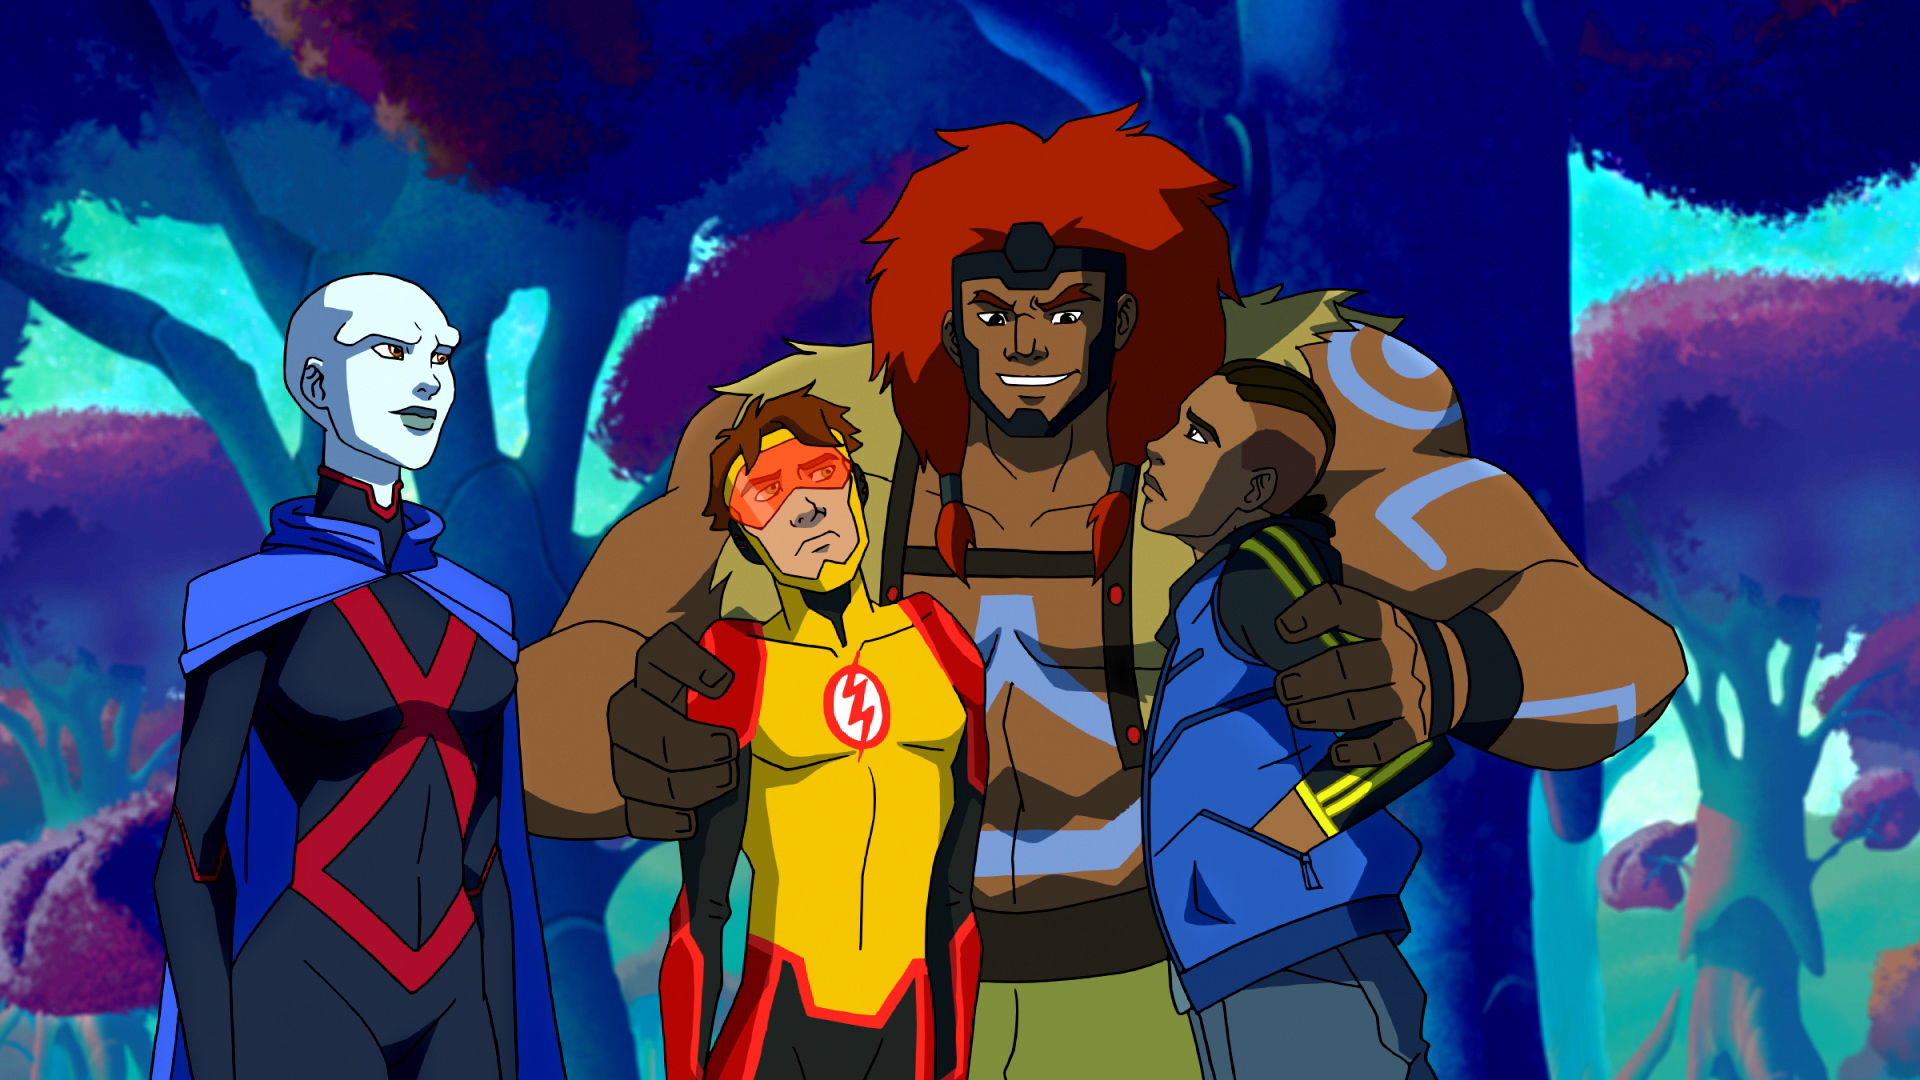 Young Justice Season 4 Trailer, Release Date, Cast Details, Plot Spoilers and More Updates